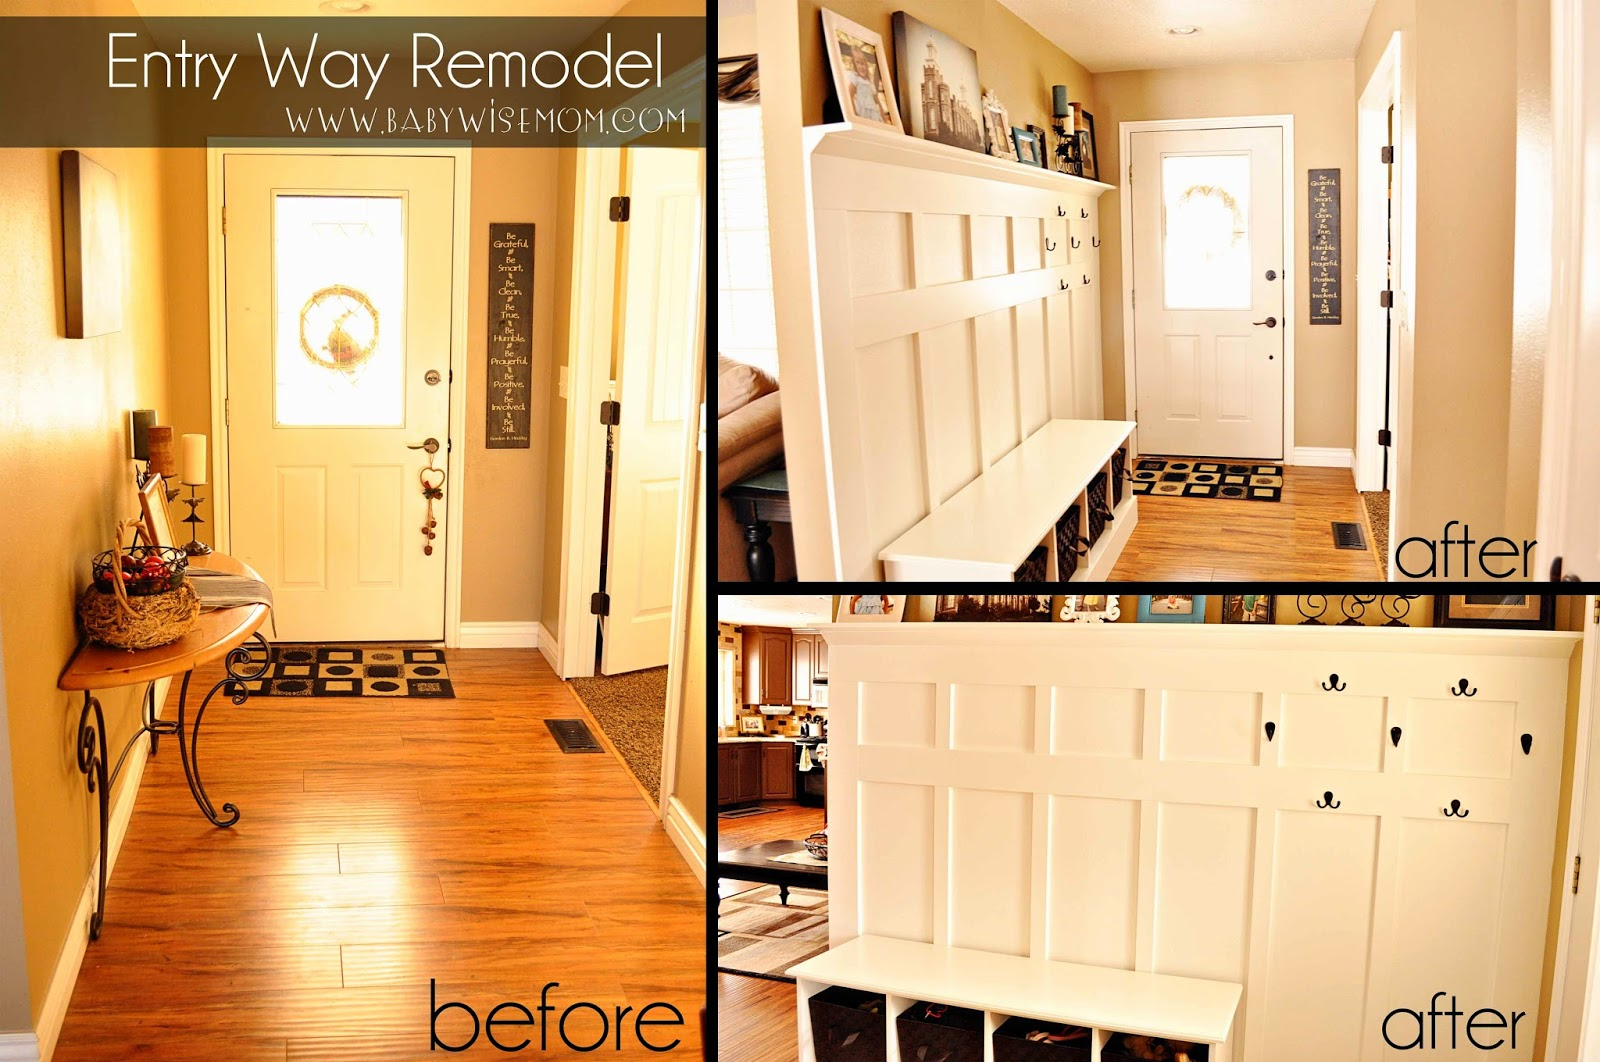 Remodeled DIY Board & Batten Entry Way {Organizing Life}